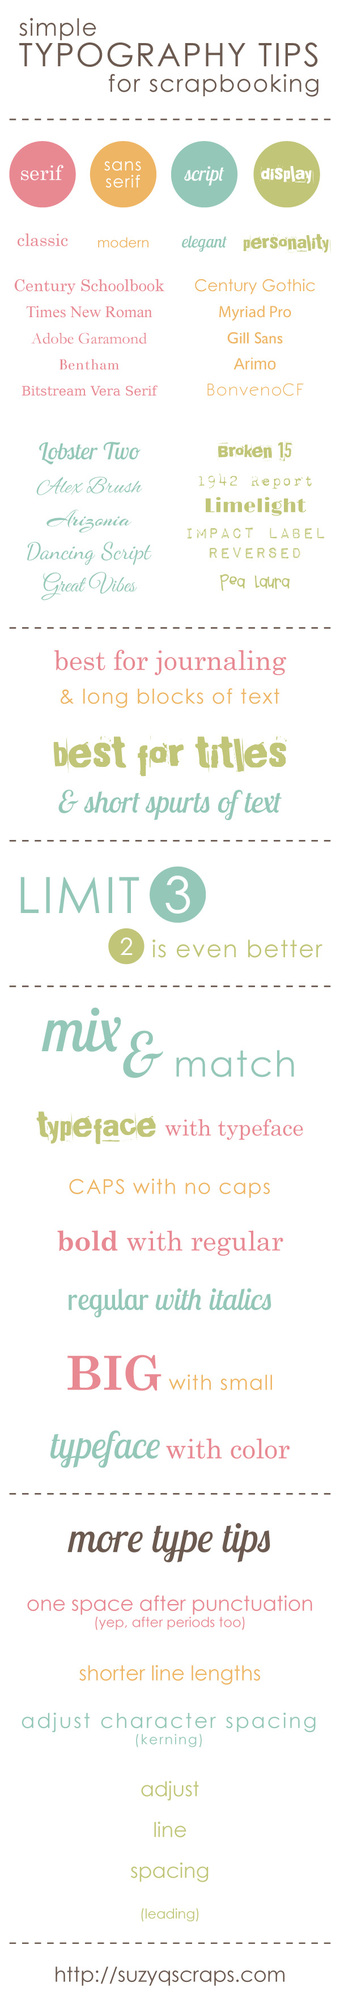 Typography tips on Craft Chatterbox Blog